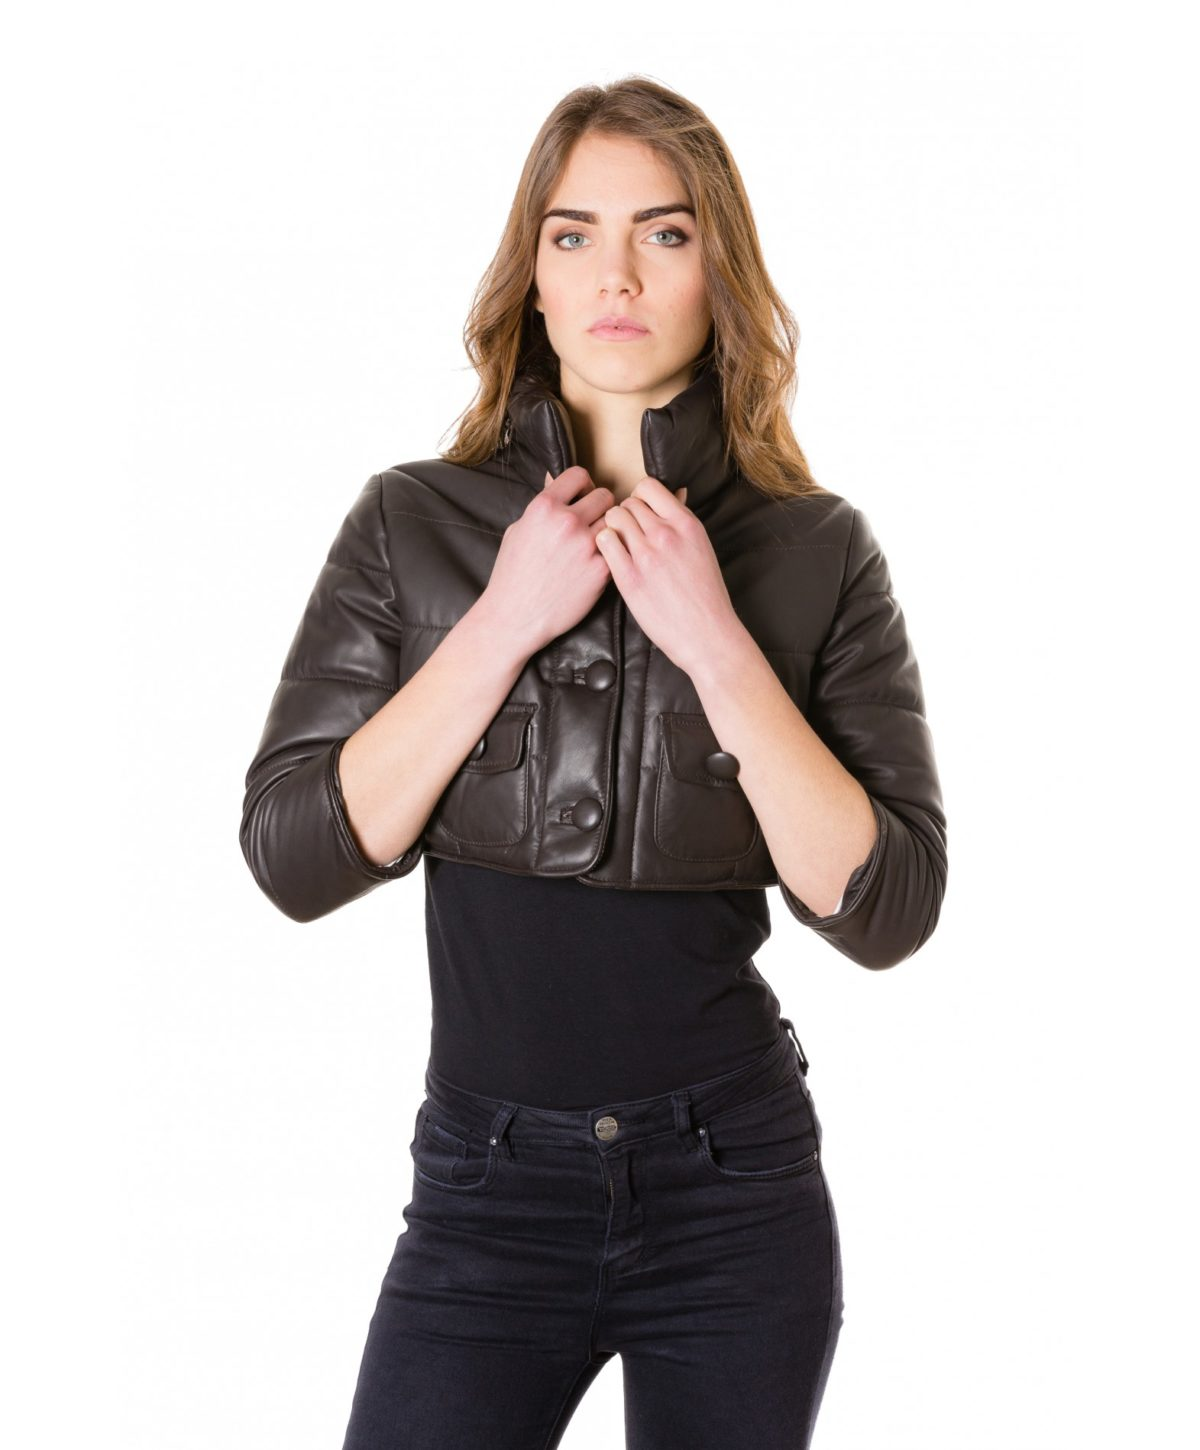 f107-dark-brown-colour-nappa-lamb-short-leather-jacket-smooth-aspect